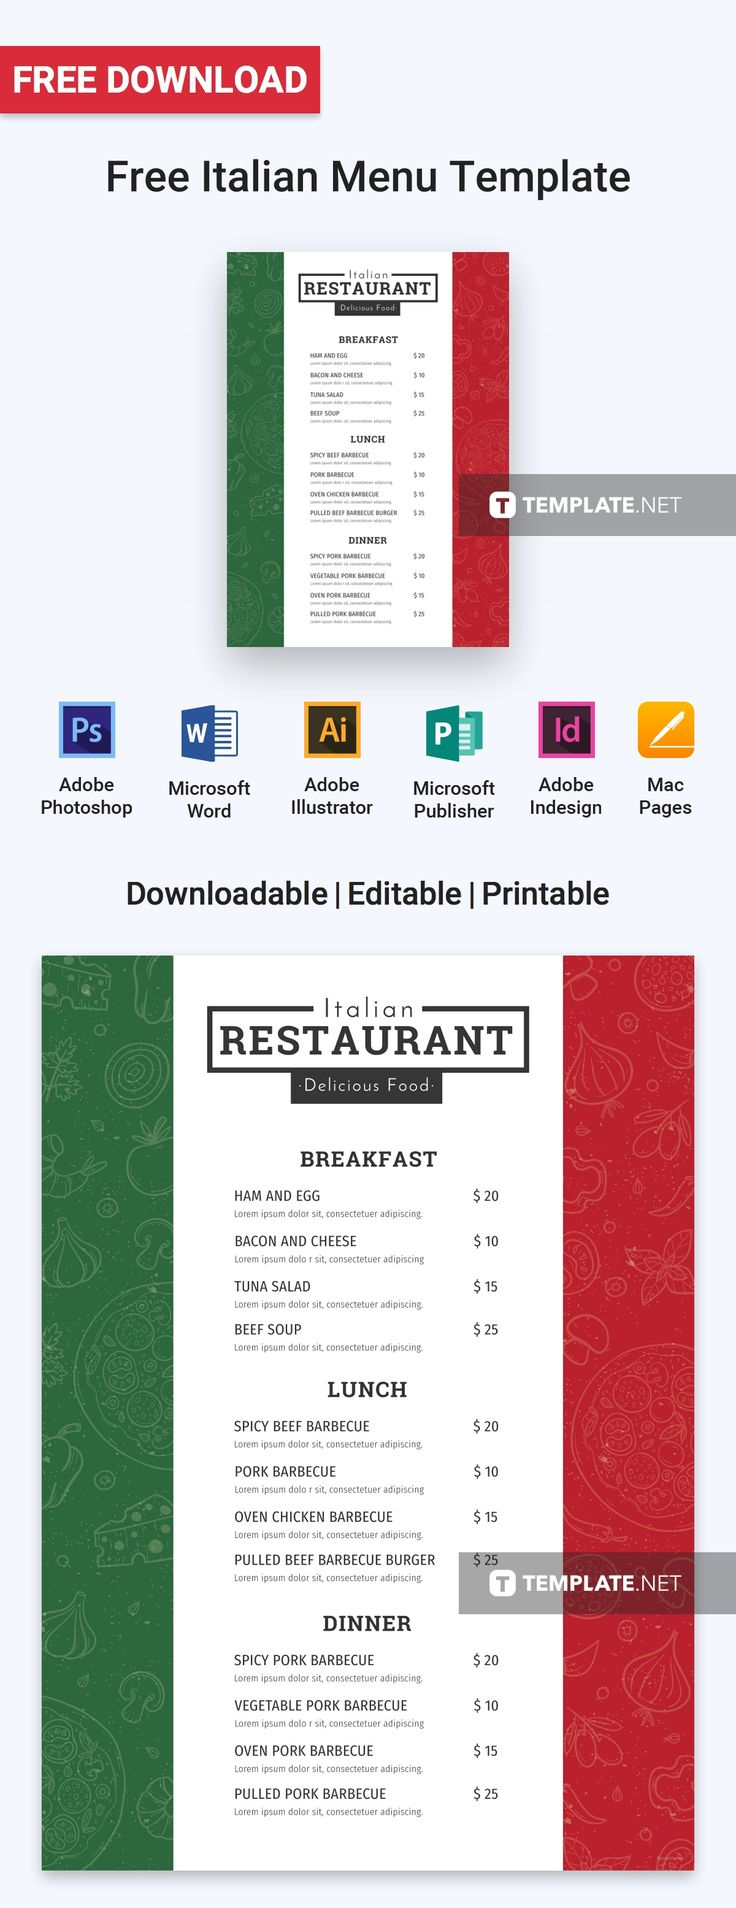 Menu Templates Free Microsoft Magnificent 12 Best Free Menu Templates Images On Pinterest